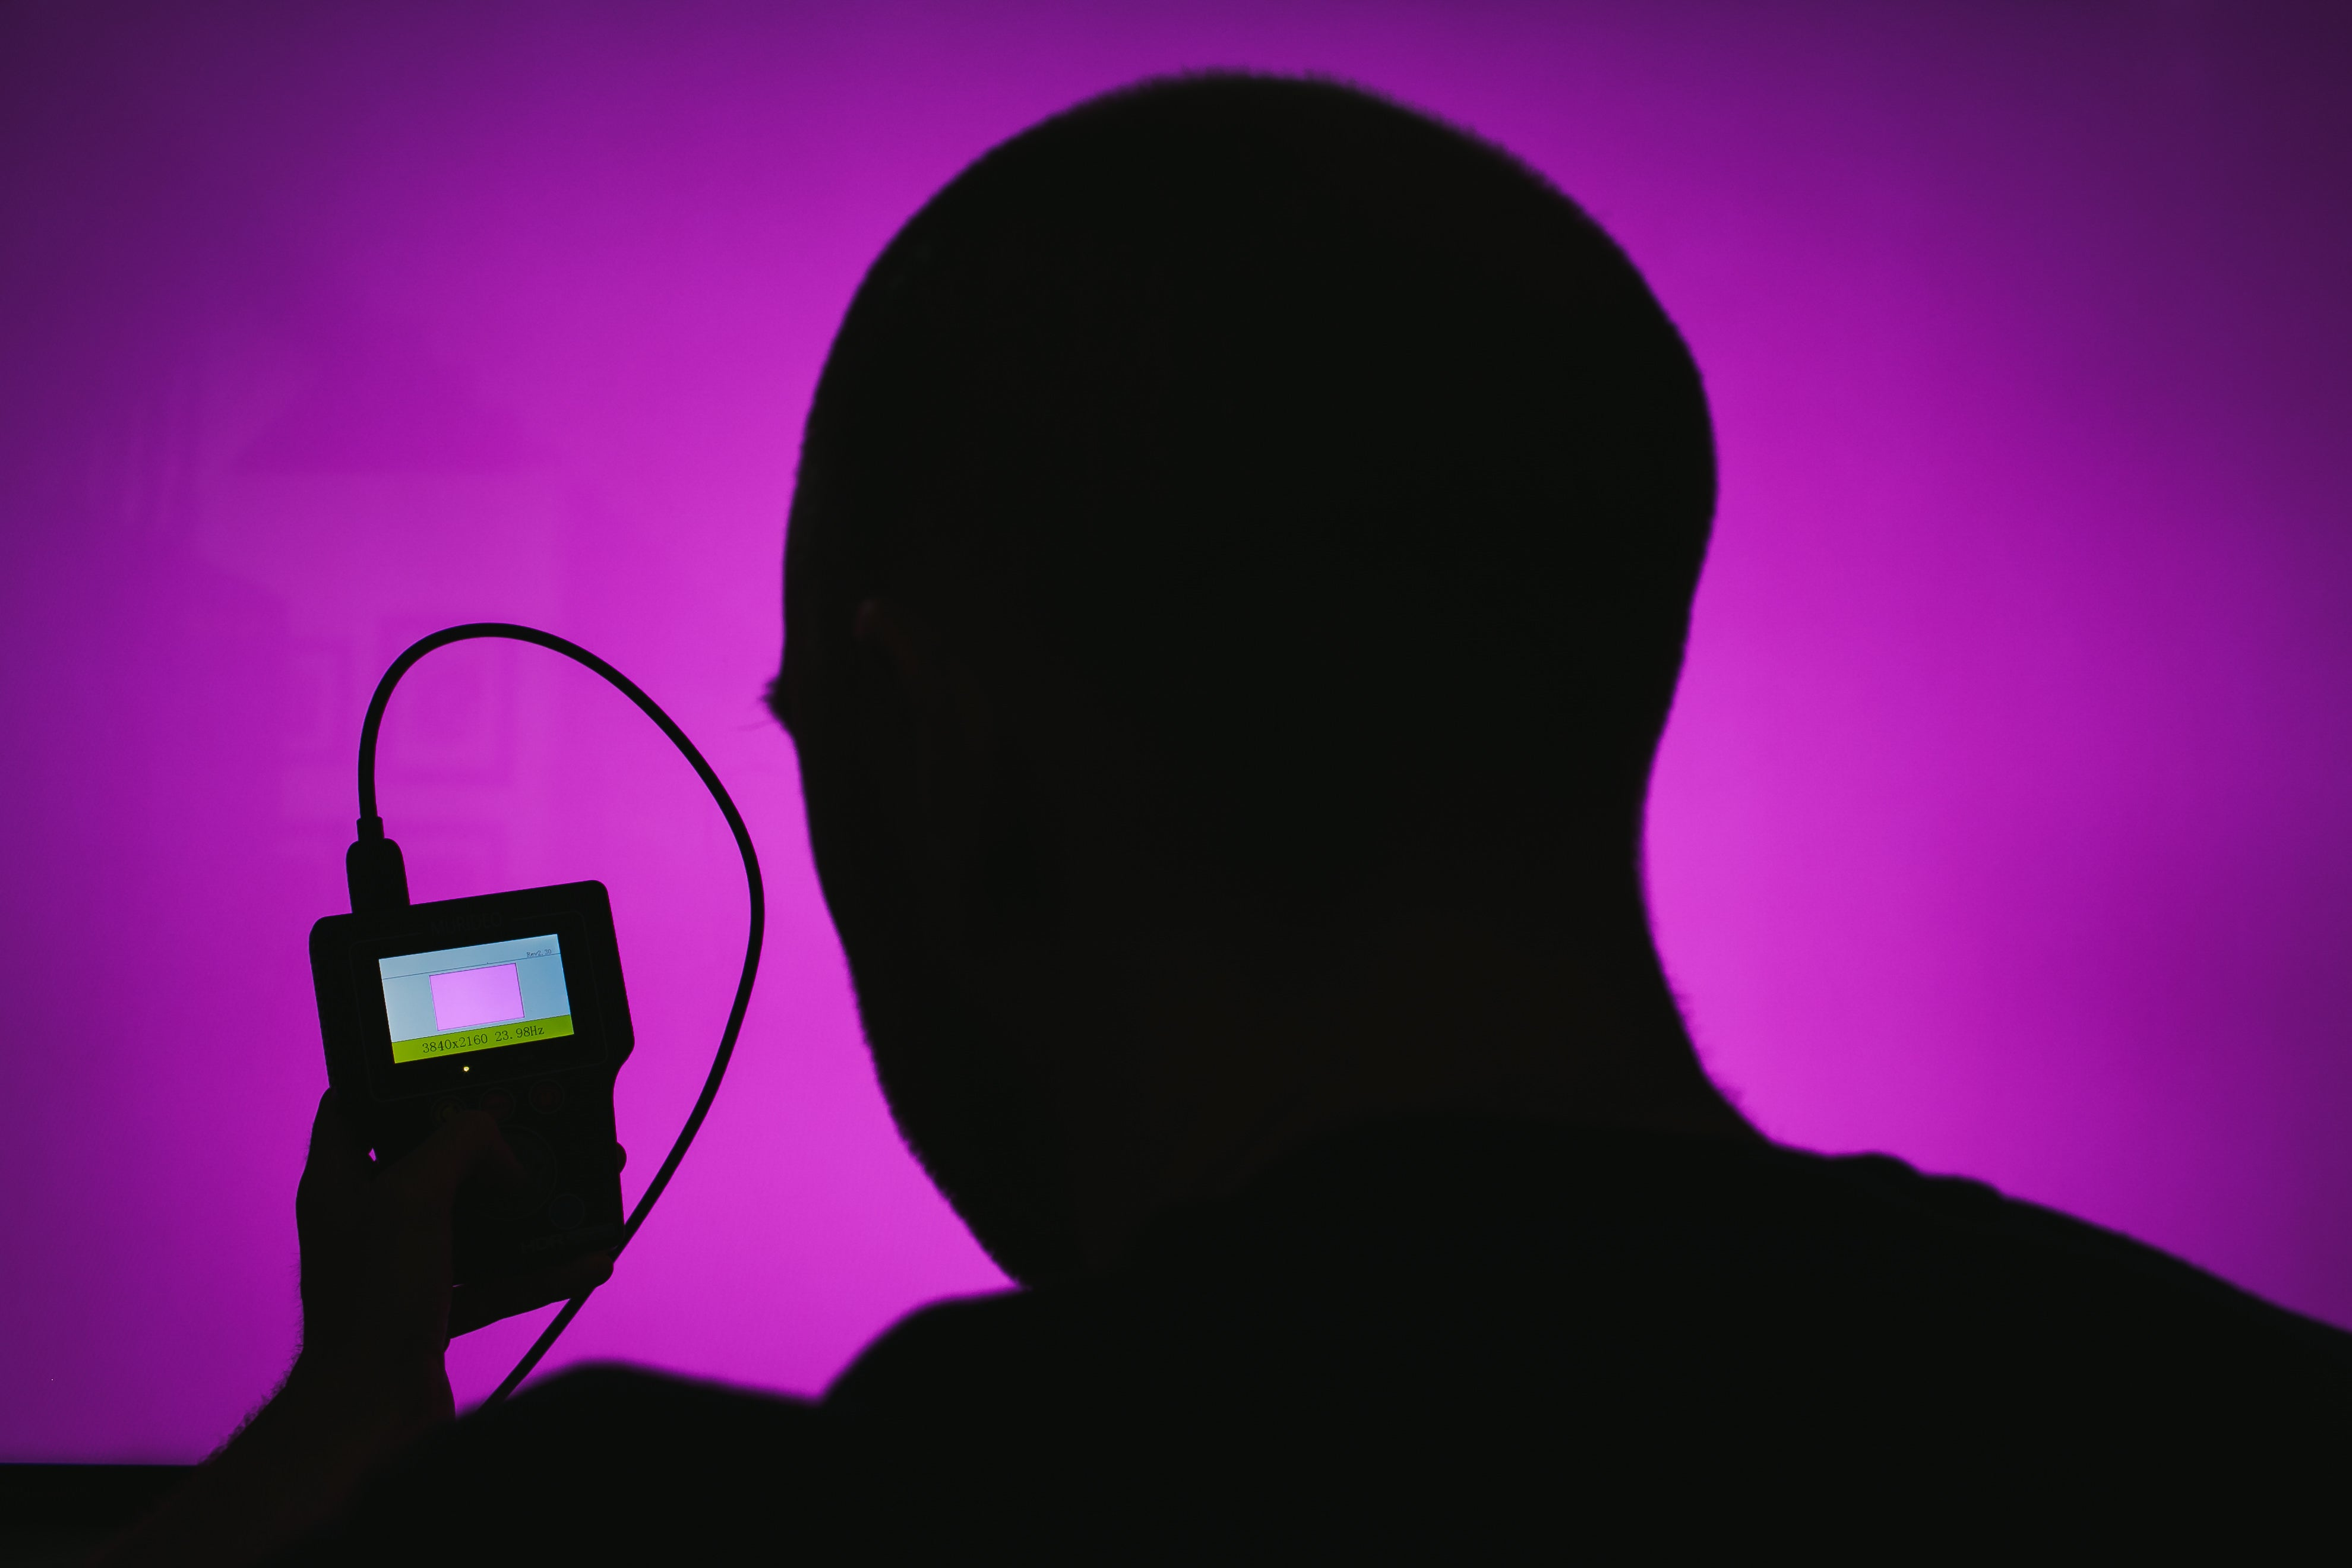 Silhouette of a person using a Murideo Six-G Analyzer.